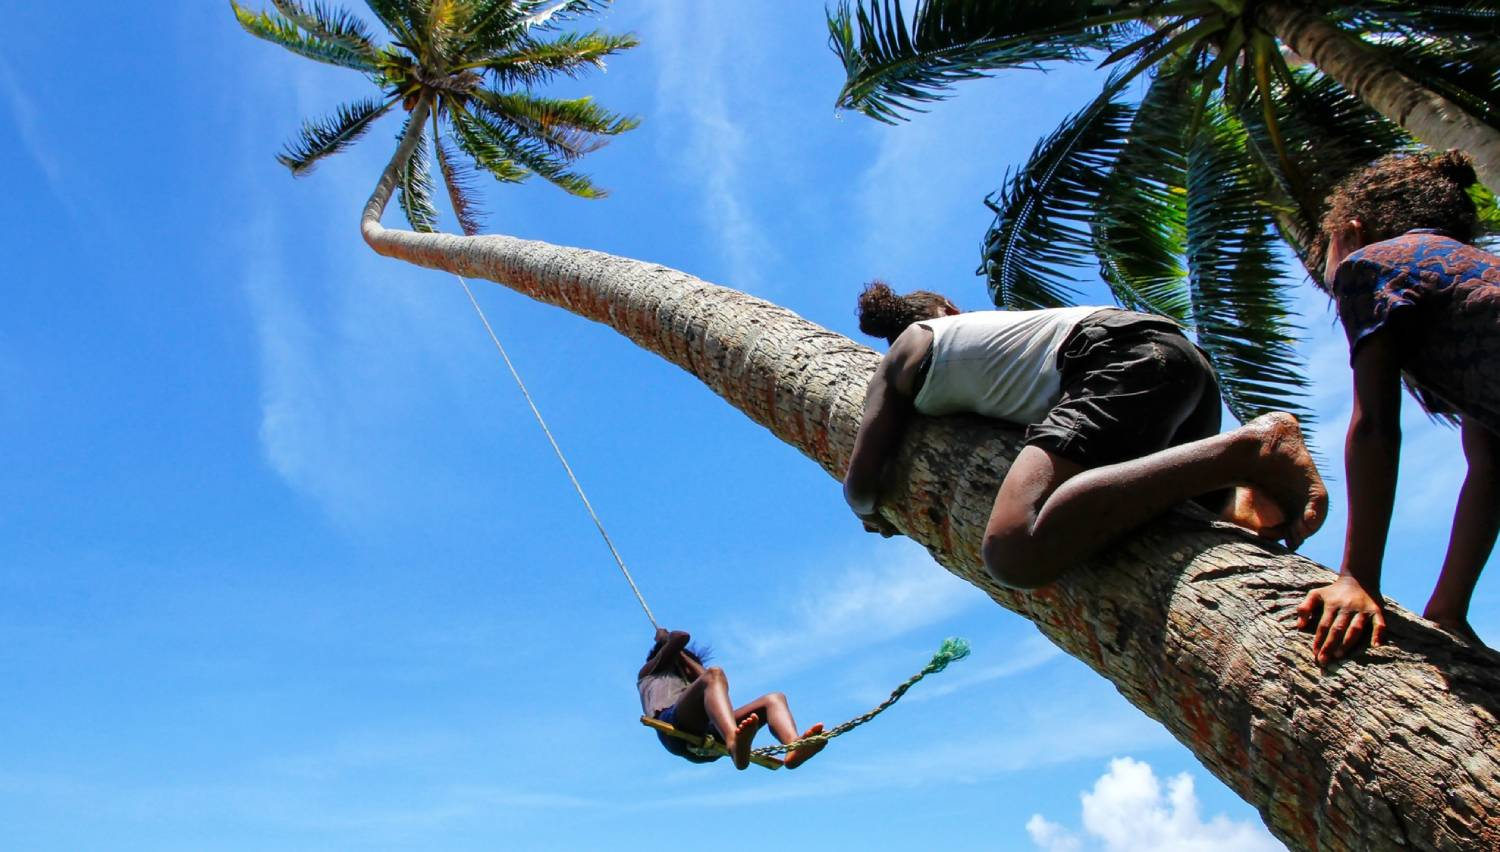 Taveuni - The Best Places To Visit In Fiji